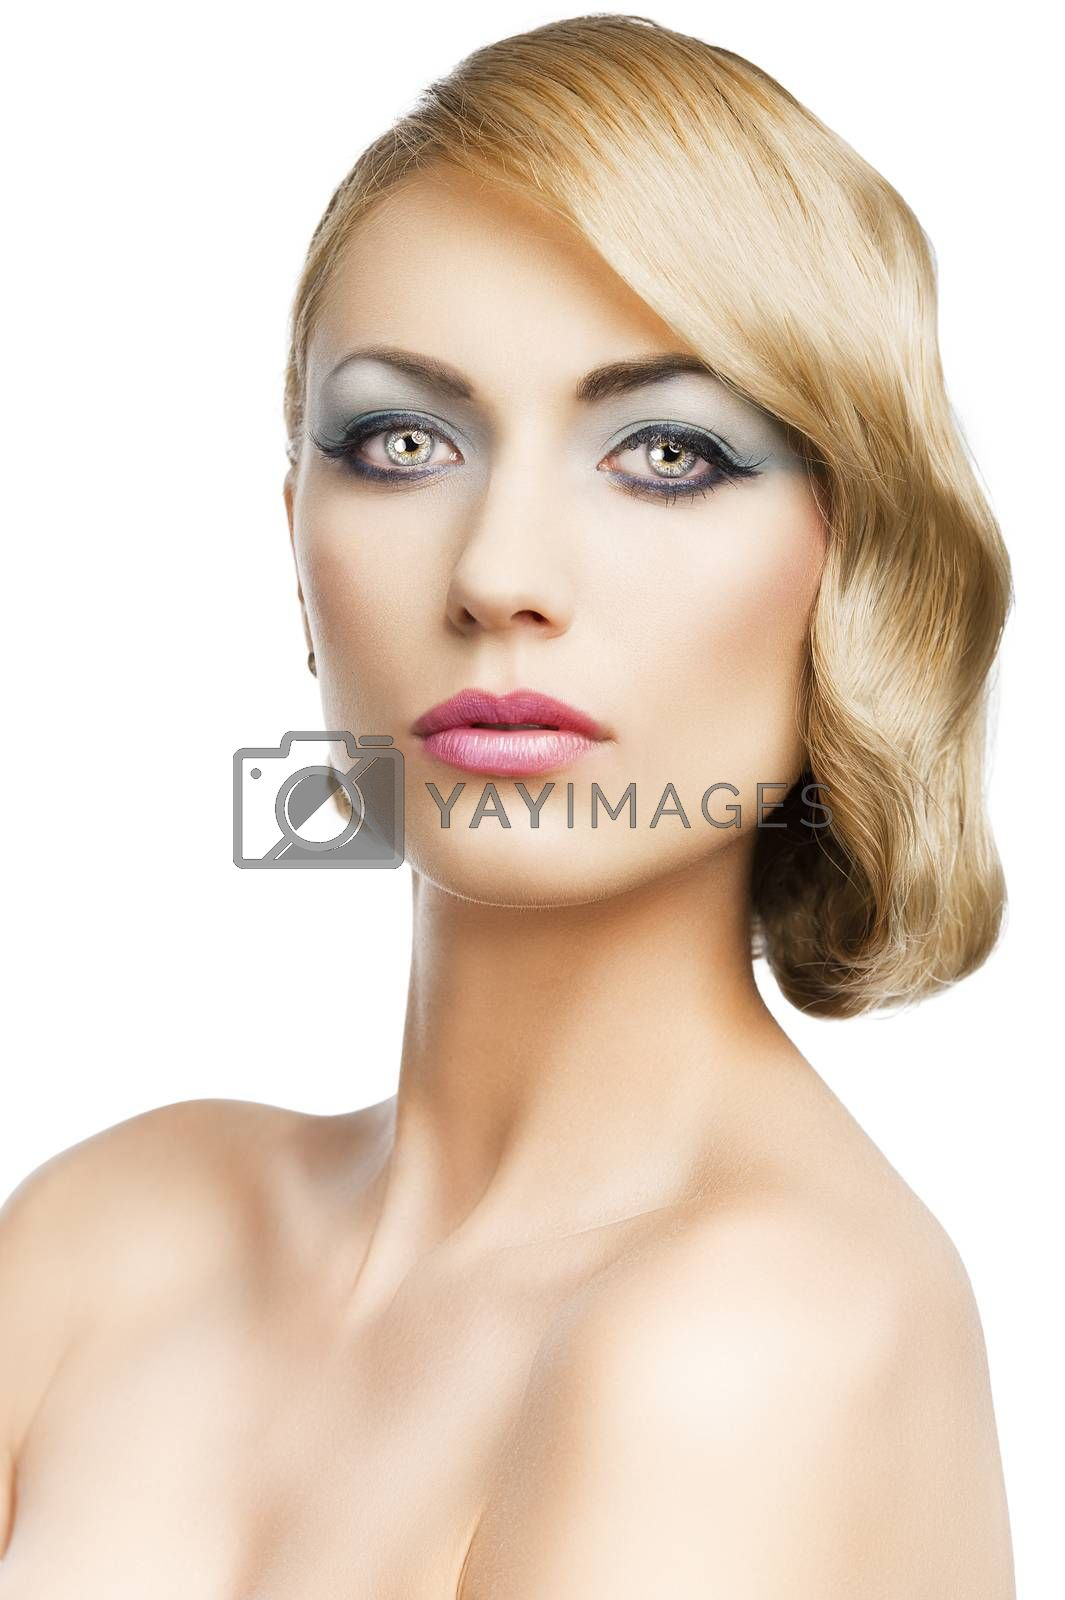 Royalty free image of blond vintage girl portrait, she looks in to the lens, she looks by fotoCD